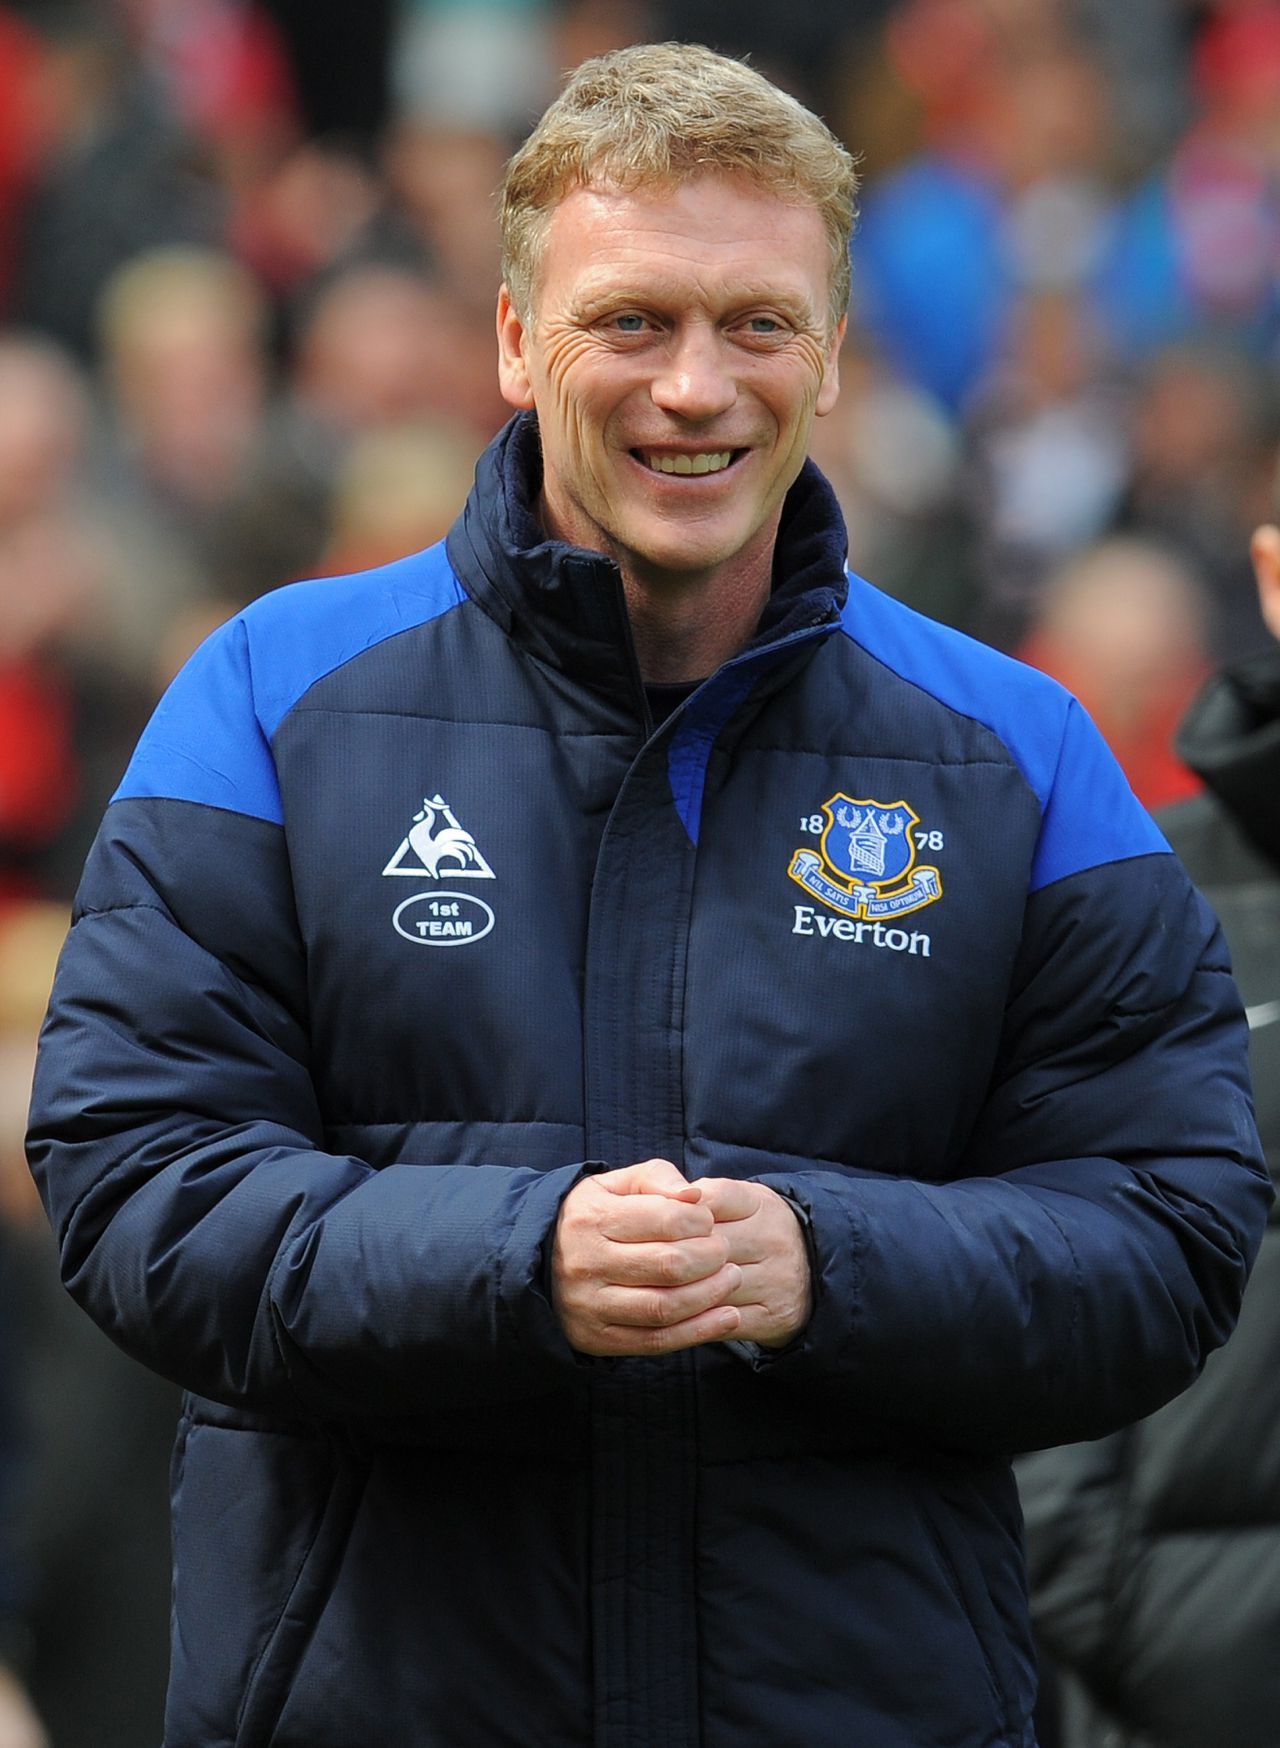 """(FILES) In a file picture taken on April 22 2012 Everton's Scottish manager David Moyes takes his seat before the English Premier League football match between Manchester United and Everton at Old Trafford in Manchester, north-west England. Everton confirmed on on May 9, 2013 that manager David Moyes will leave the club at the end of the season, paving the way for him to succeed Alex Ferguson at Manchester United. AFP PHOTO/ANDREW YATES RESTRICTED TO EDITORIAL USE. No use with unauthorized audio, video, data, fixture lists, club/league logos or """"live"""" services. Online in-match use limited to 45 images, no video emulation. No use in betting, games or single club/league/player publications."""